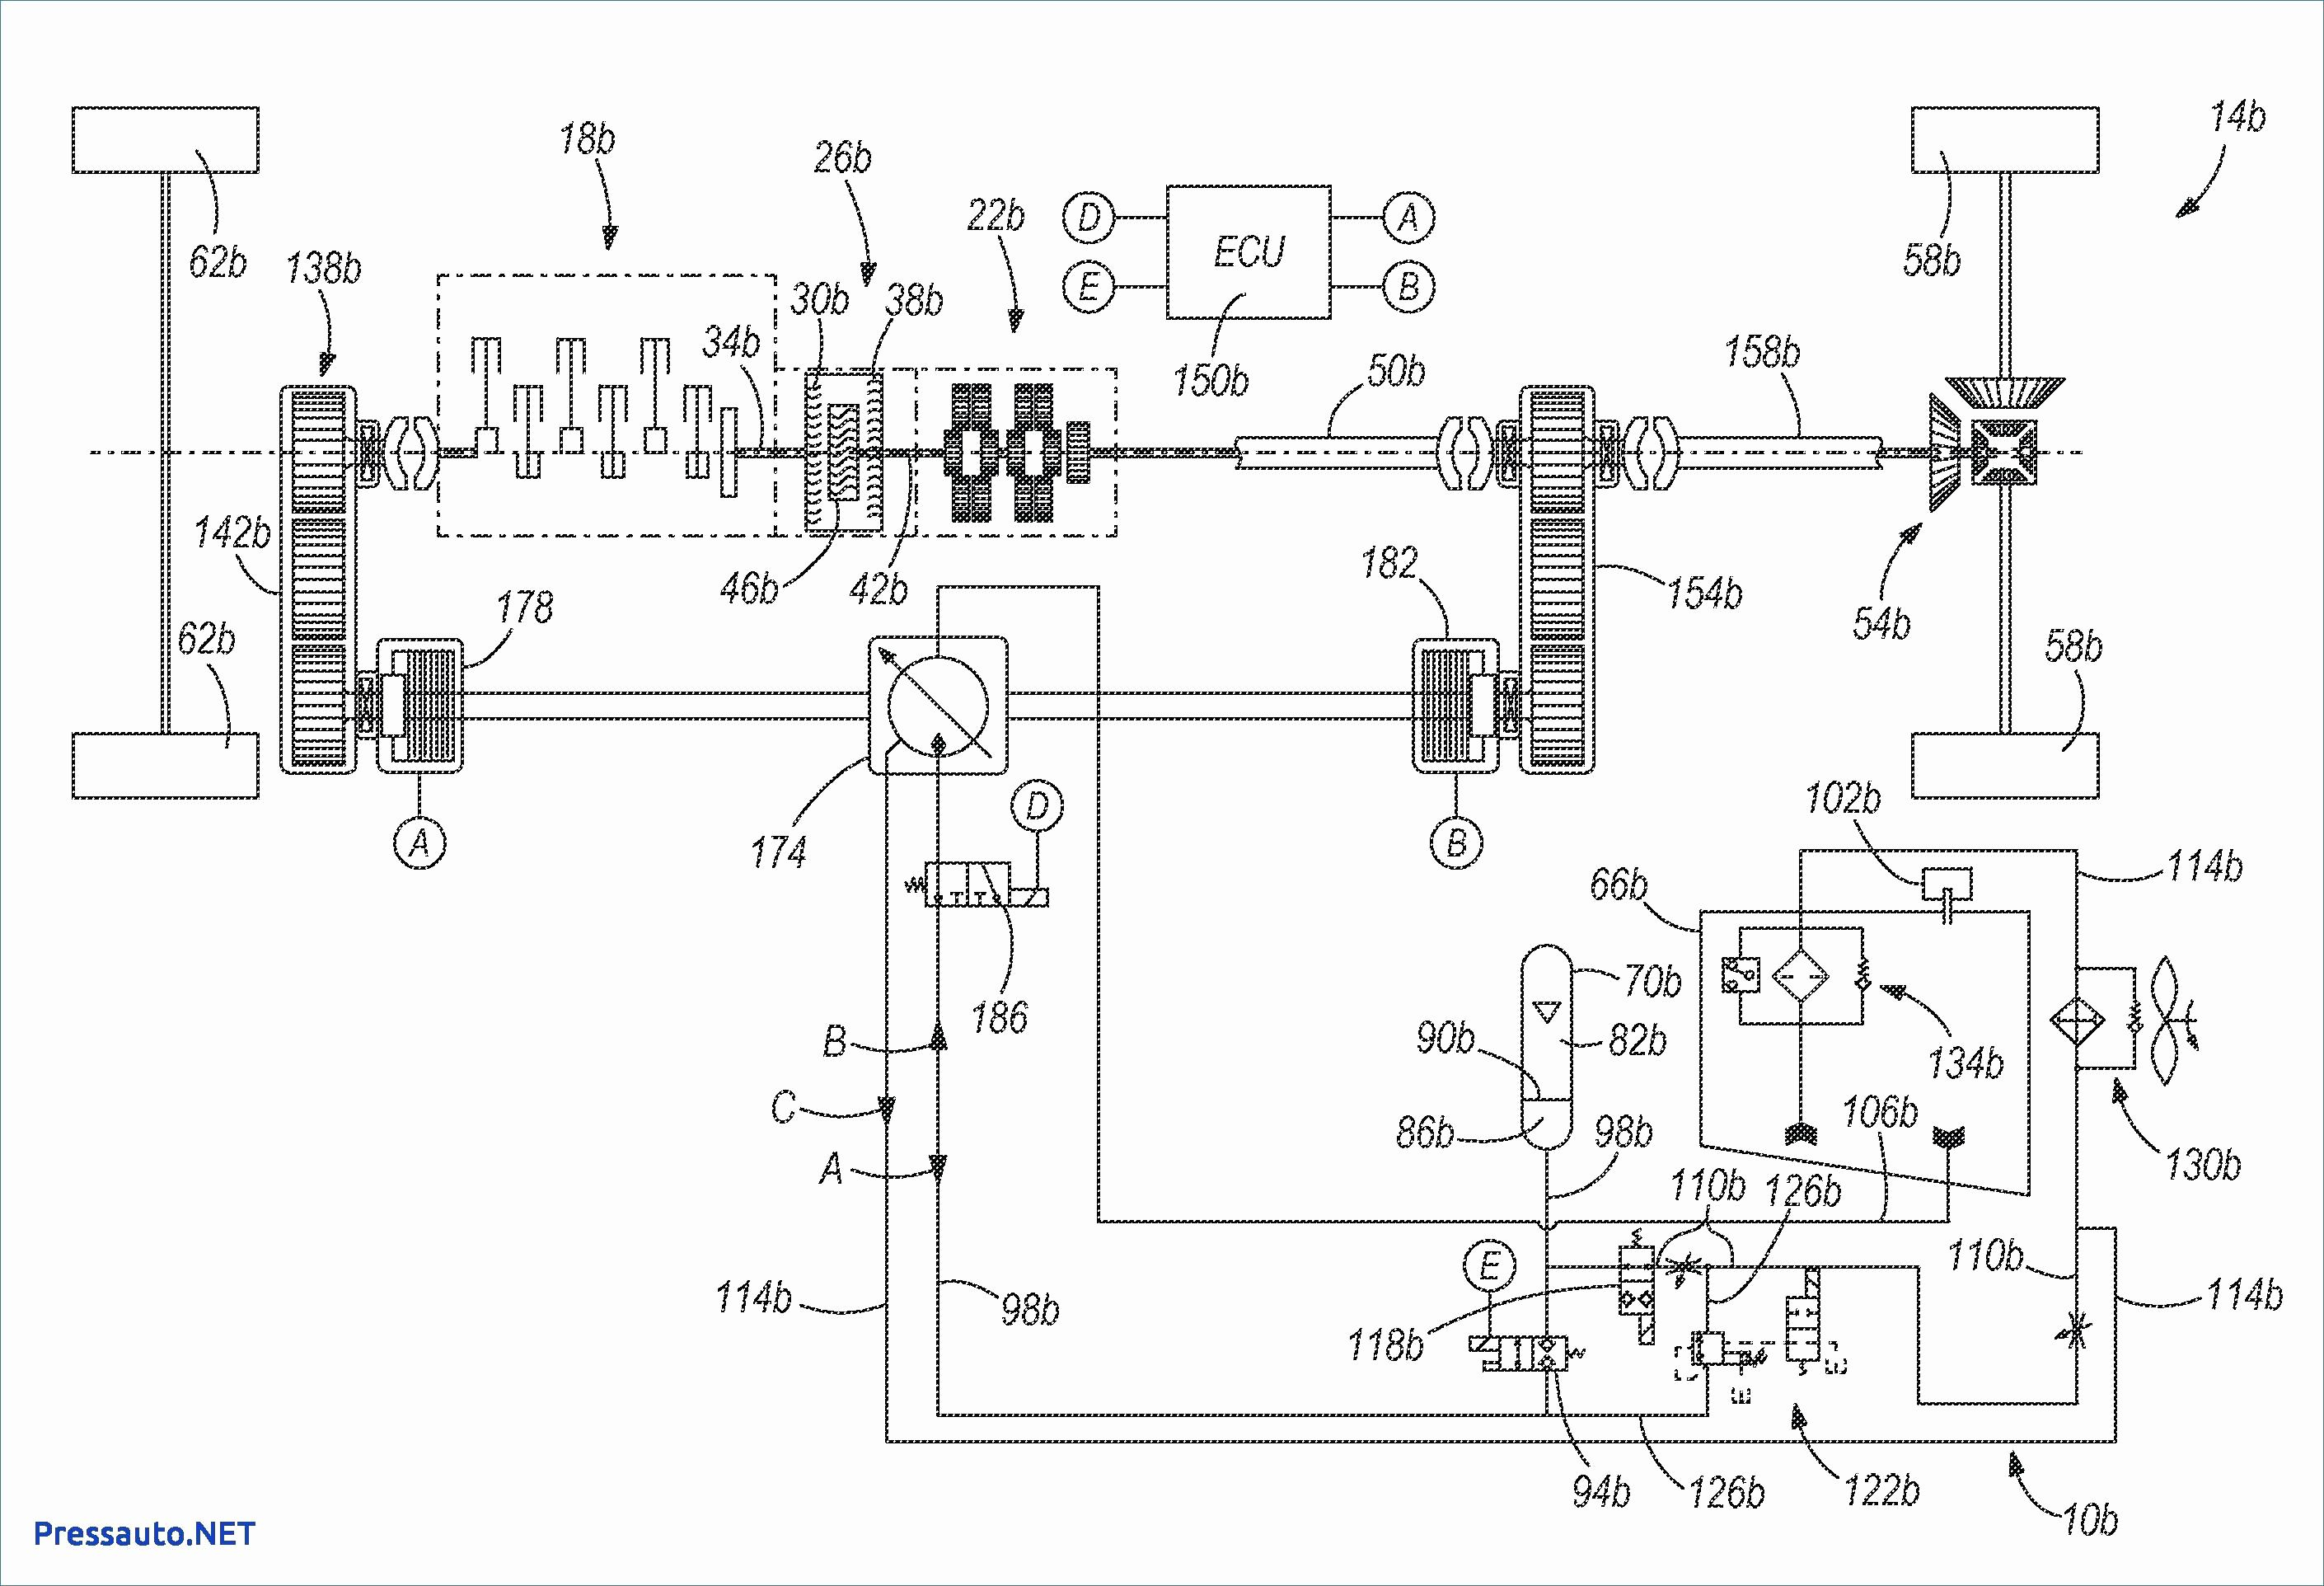 2007 International Dt466 Engine Wiring Diagrams. 2007